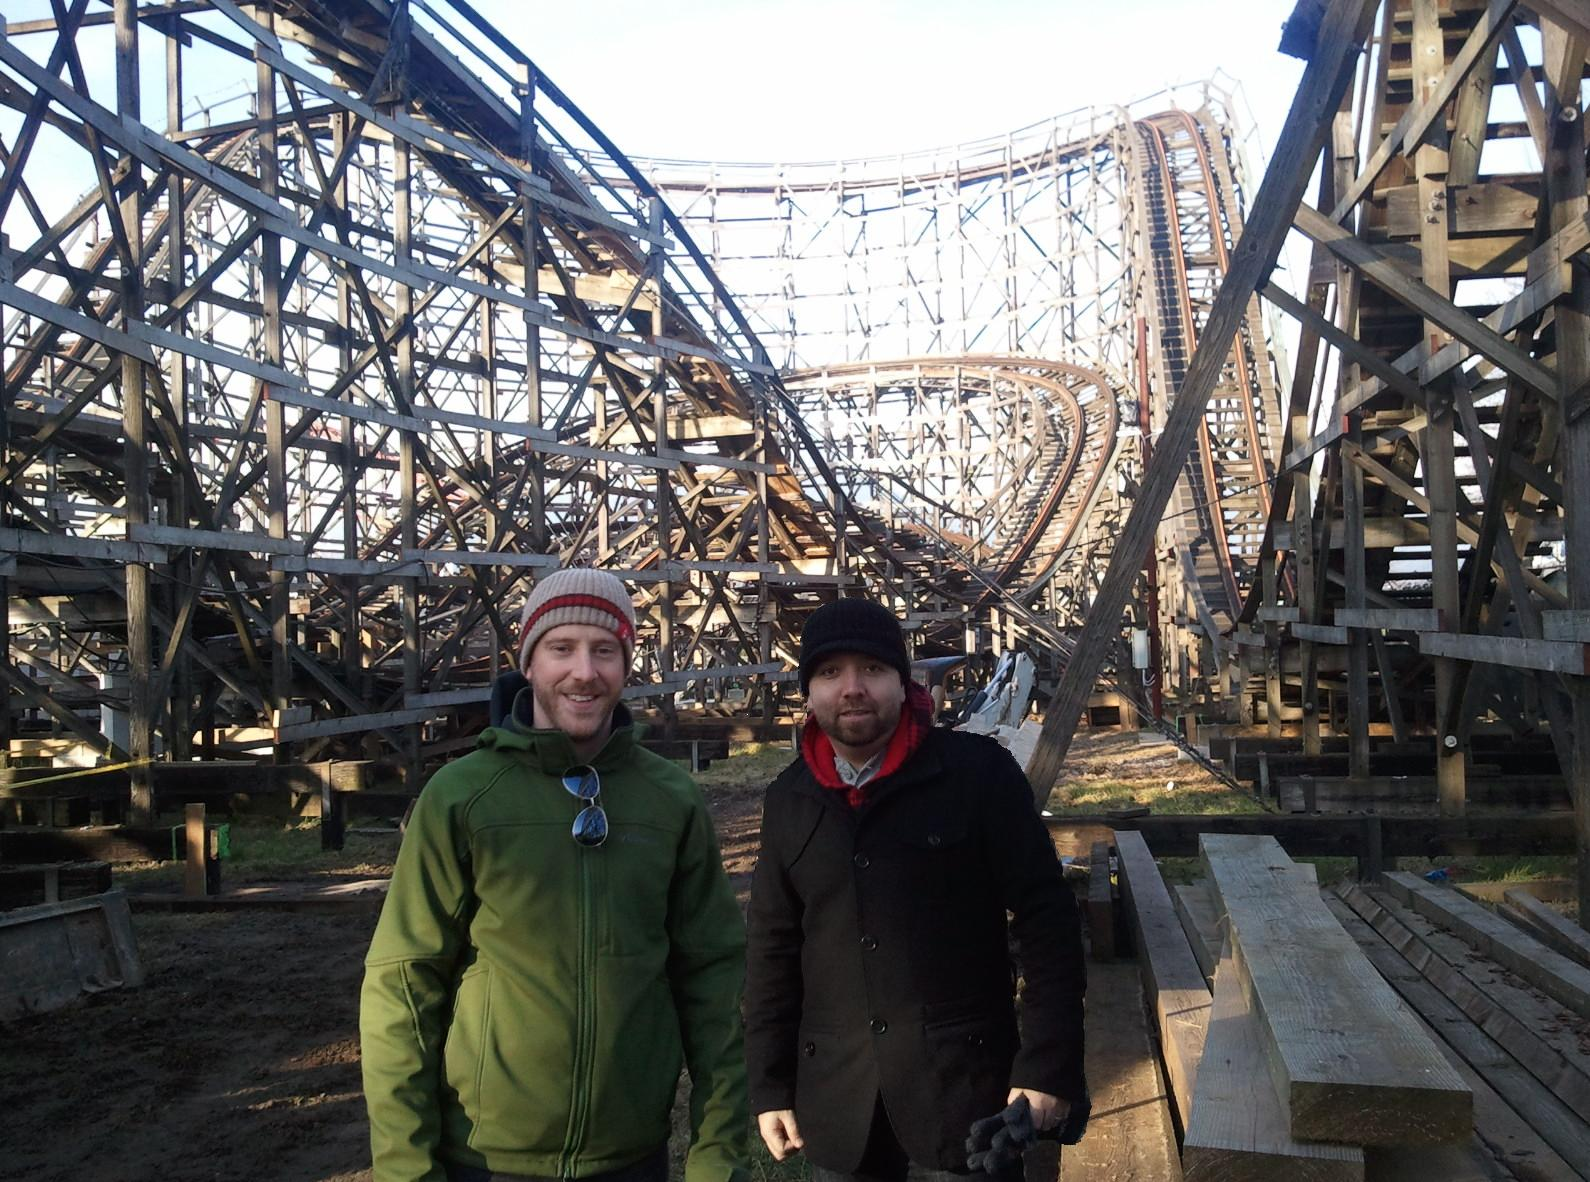 The Wooden Roller Coaster Beautiful Vancouver